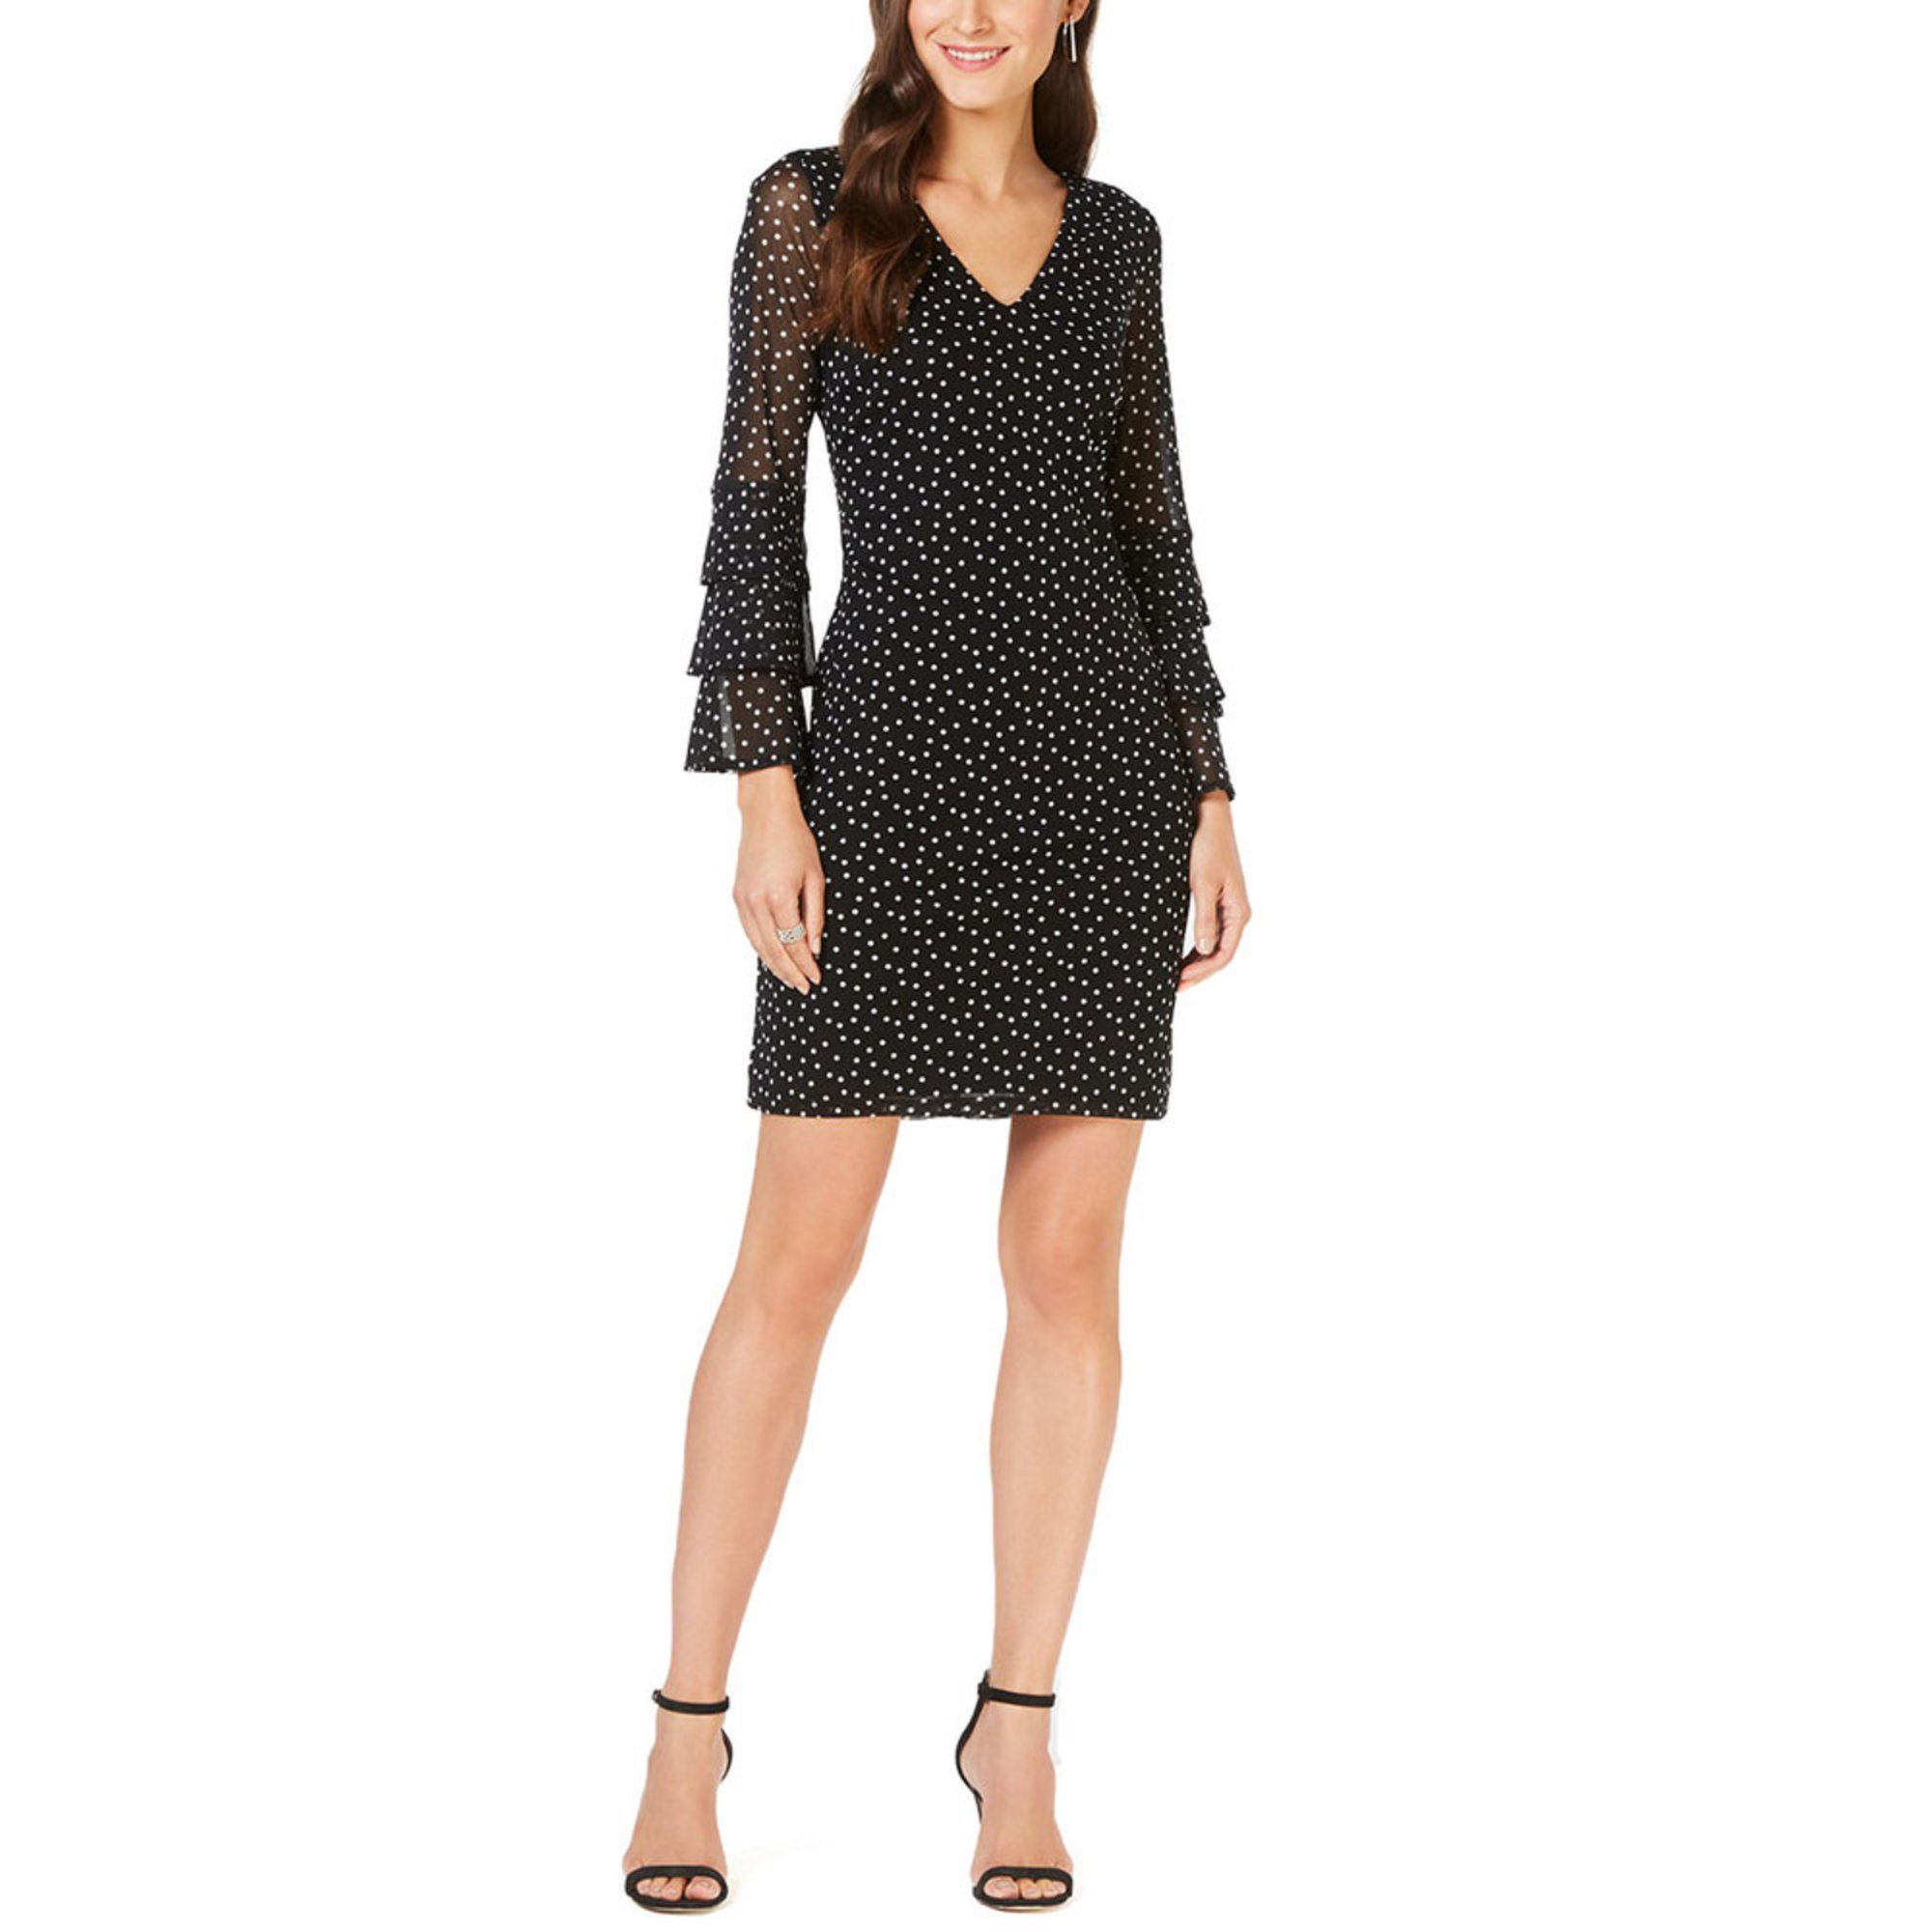 Inc International Concepts Womens Tiered Sleeve Dotted Dress